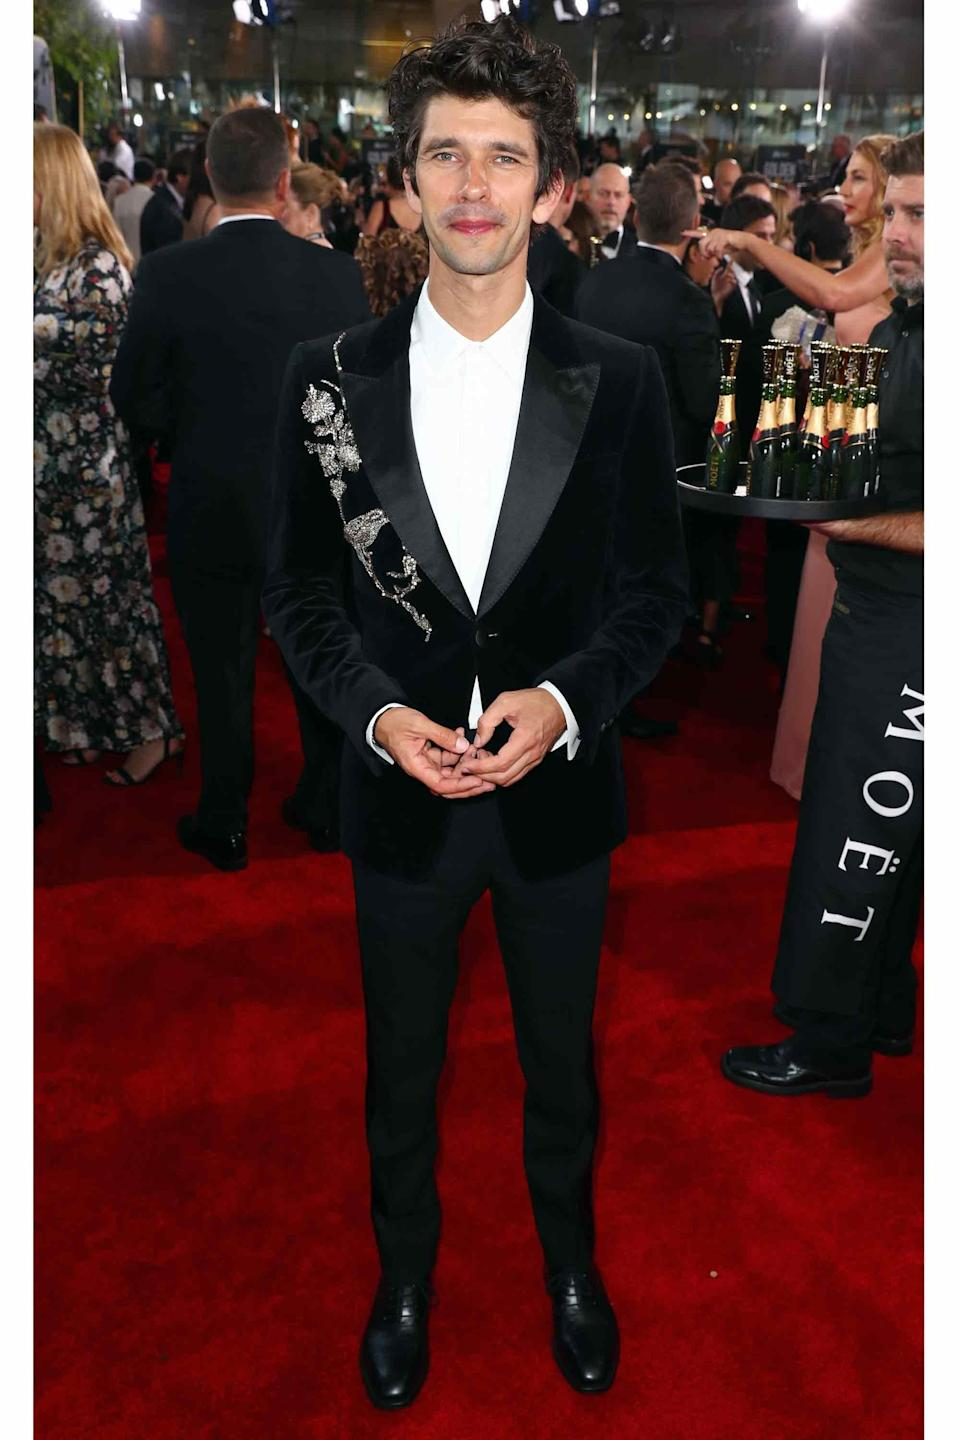 The red carpet was stocked with embroidered, embellished, and swervy jackets, and Whishaw's tailored McQueen was one of the best.